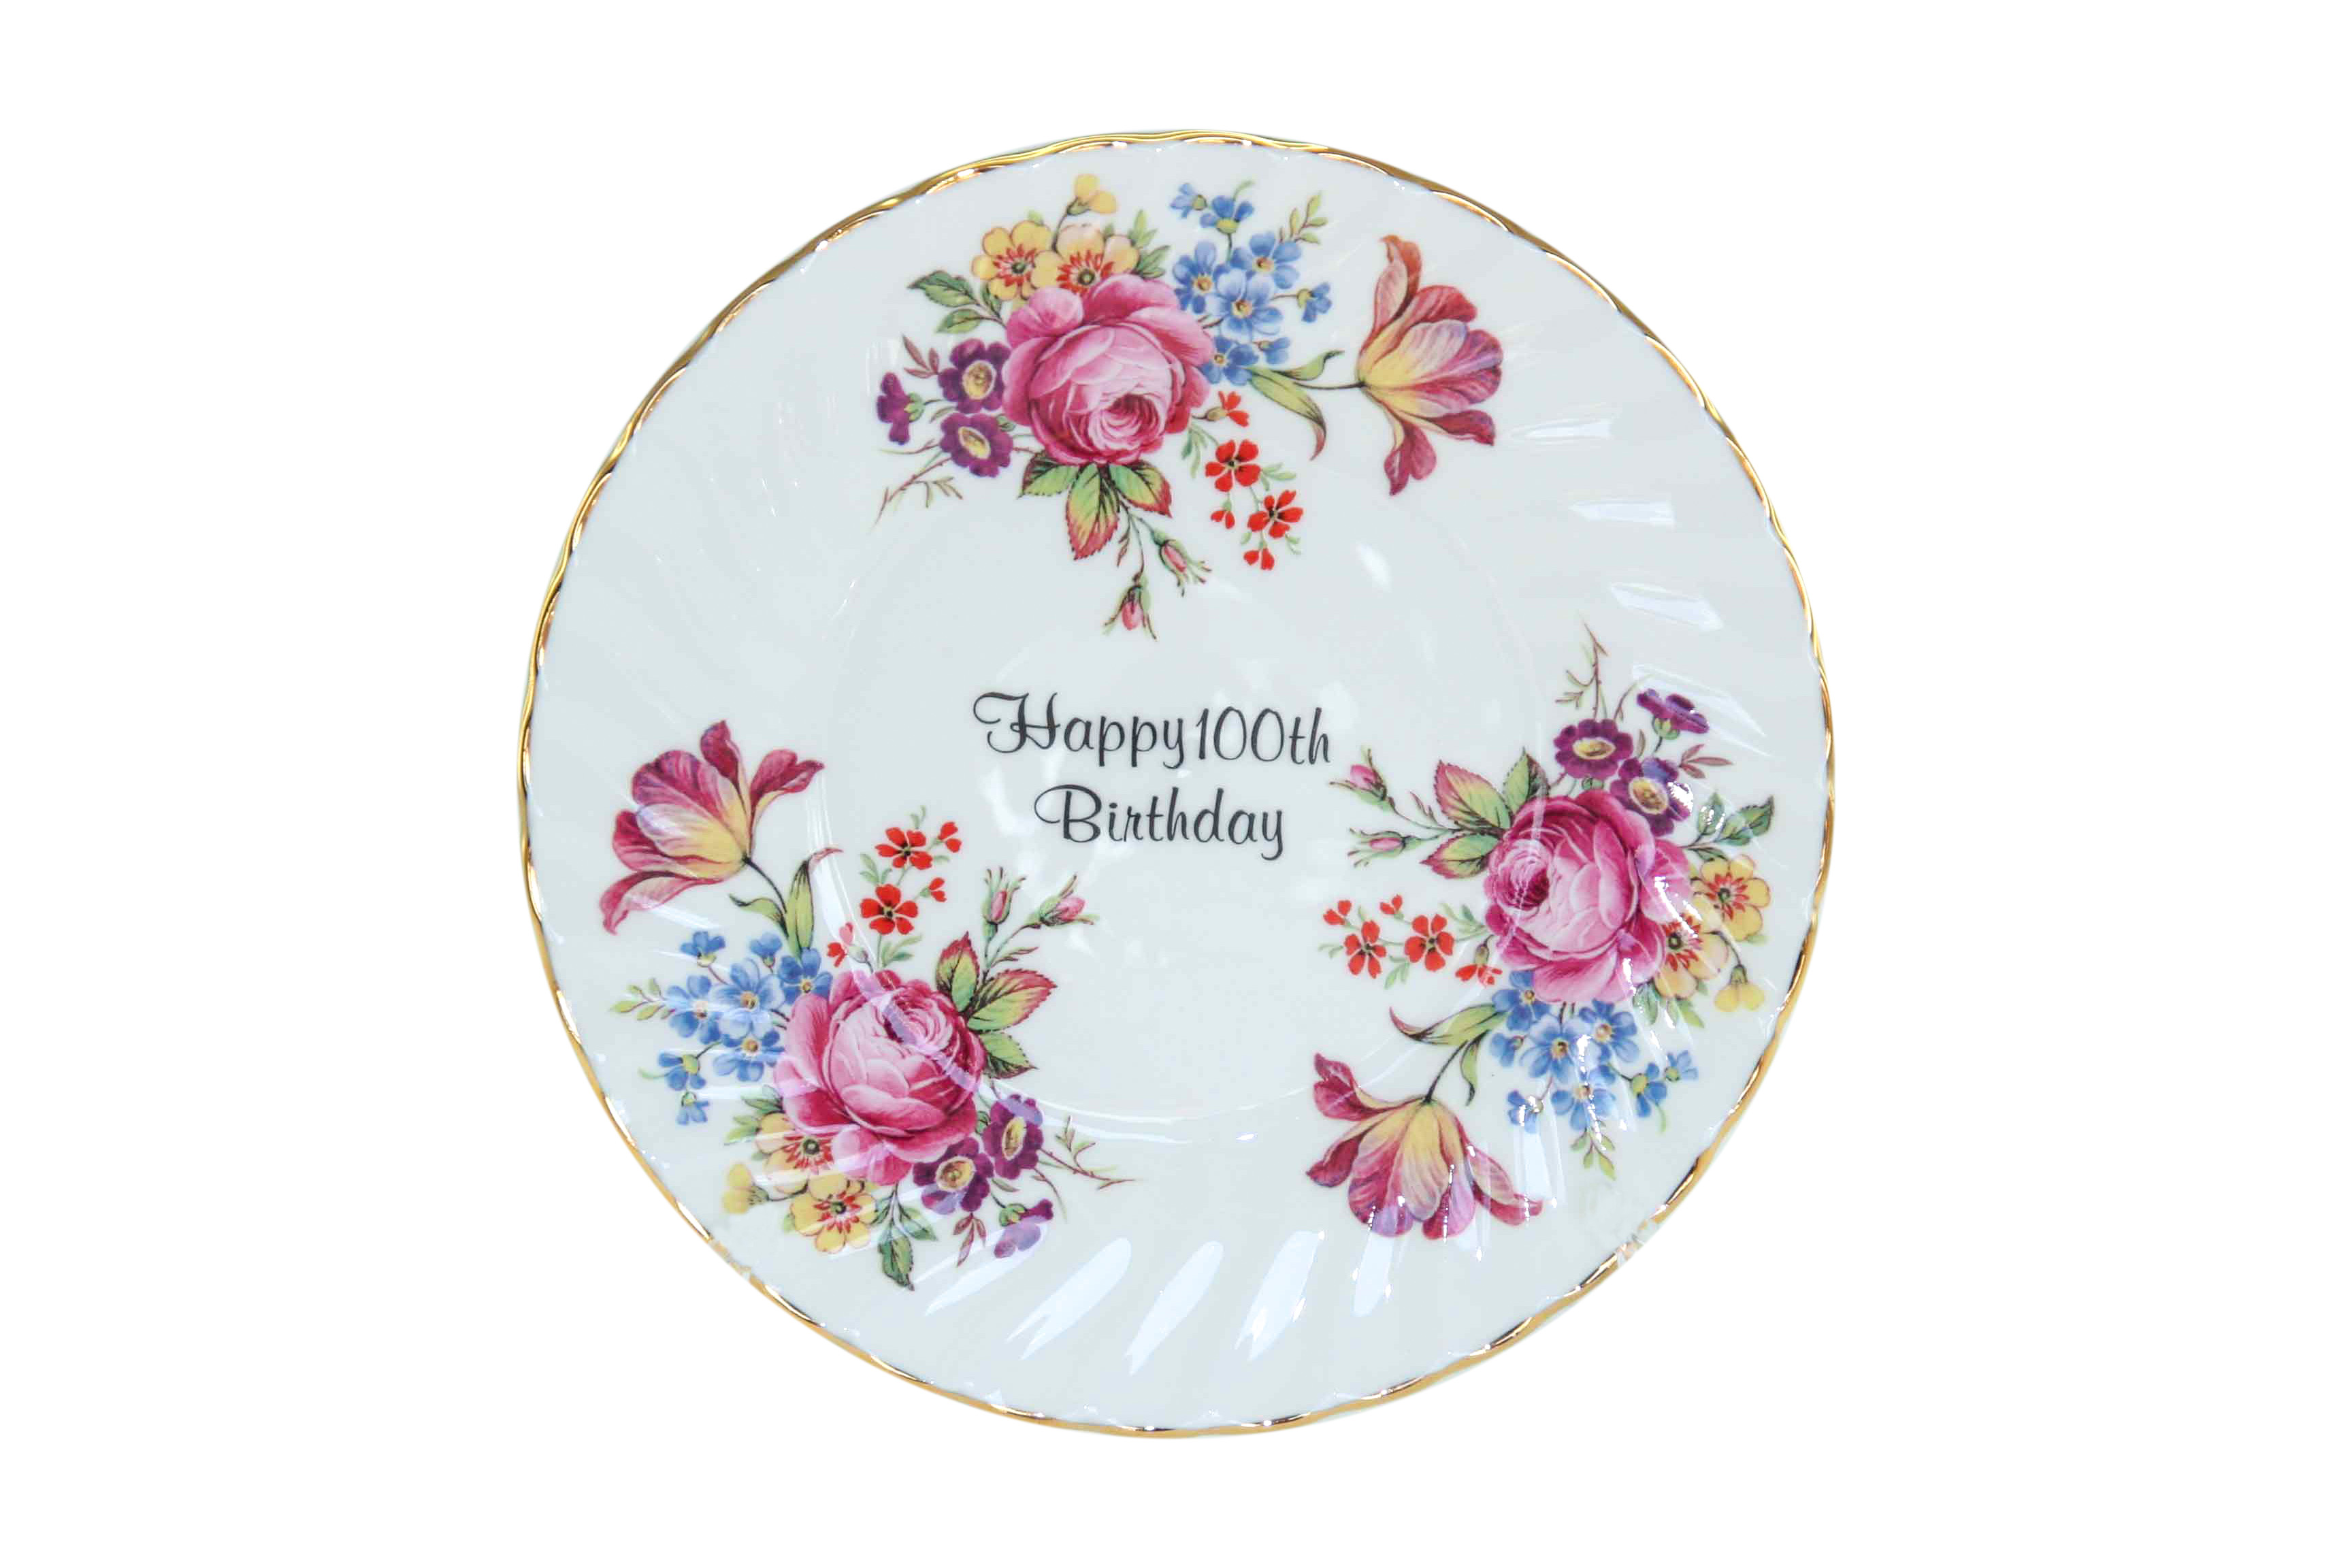 100th Birthday Cake/Display Plate